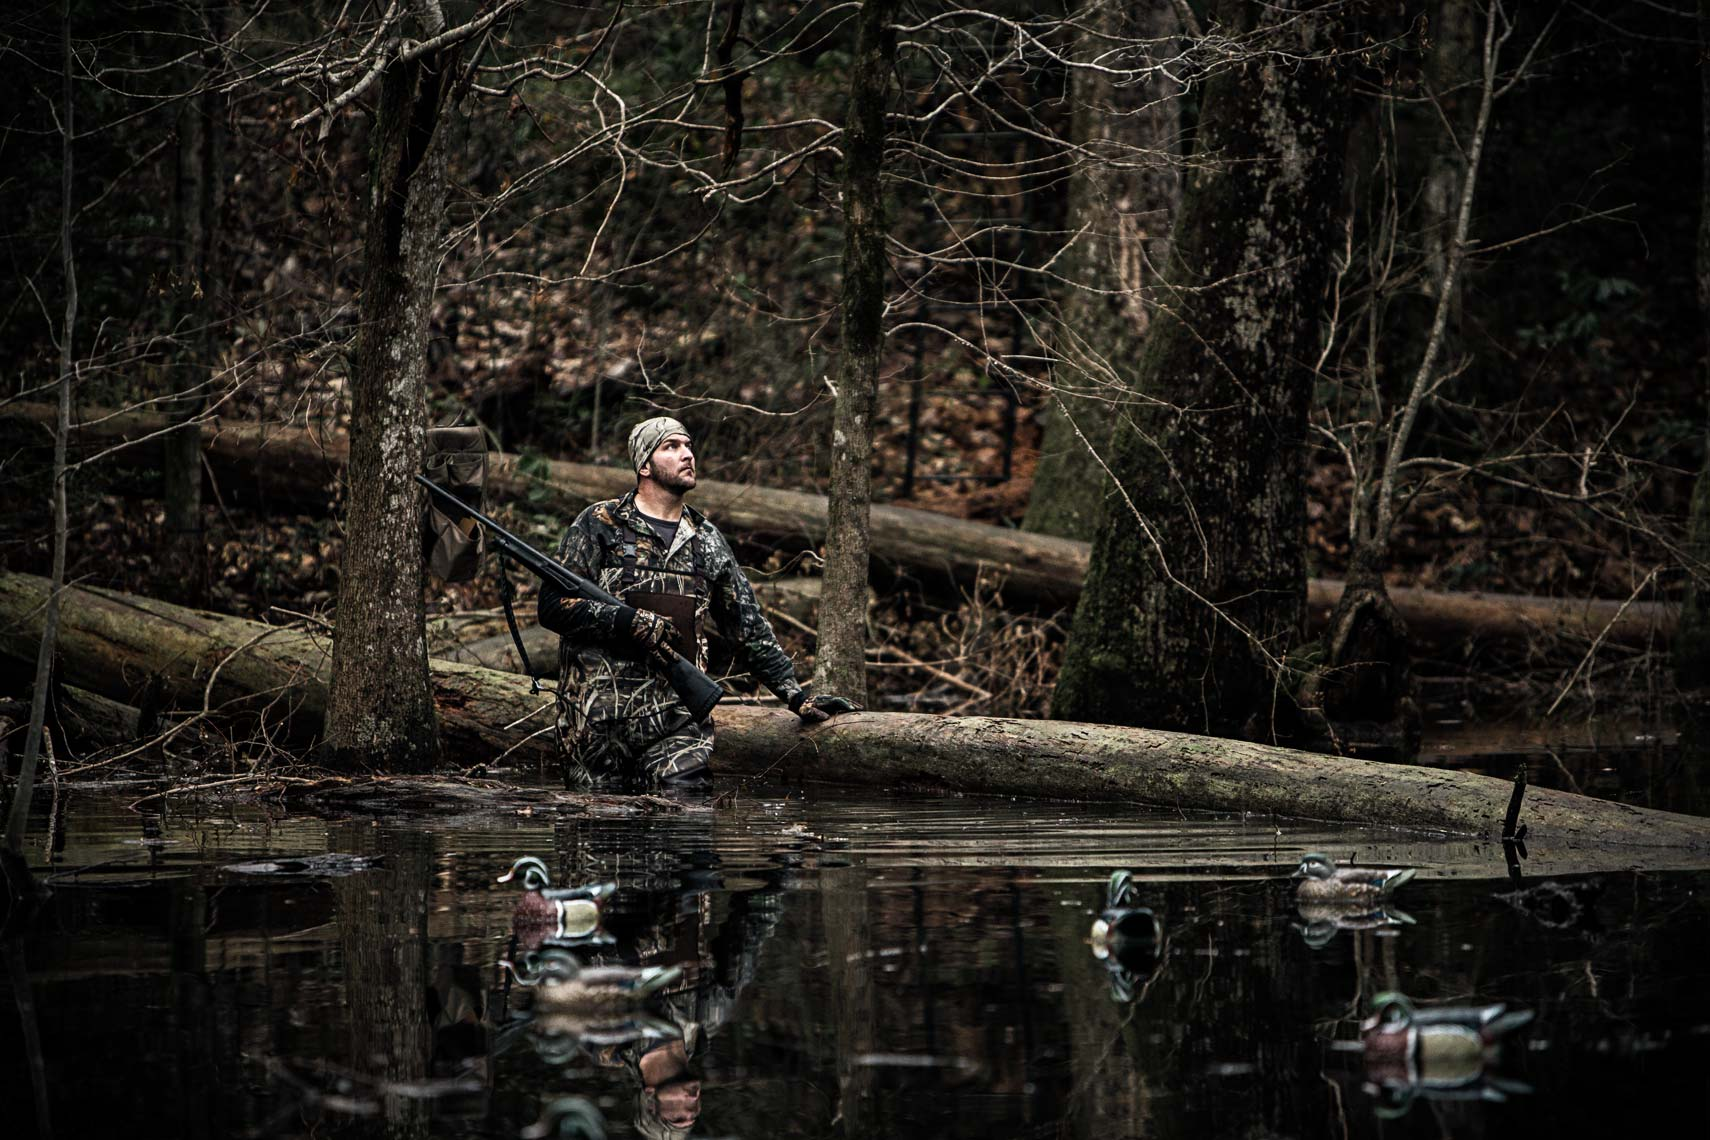 Duck hunter wearing camo gear, standing in pond at dawn. Atlanta photographer